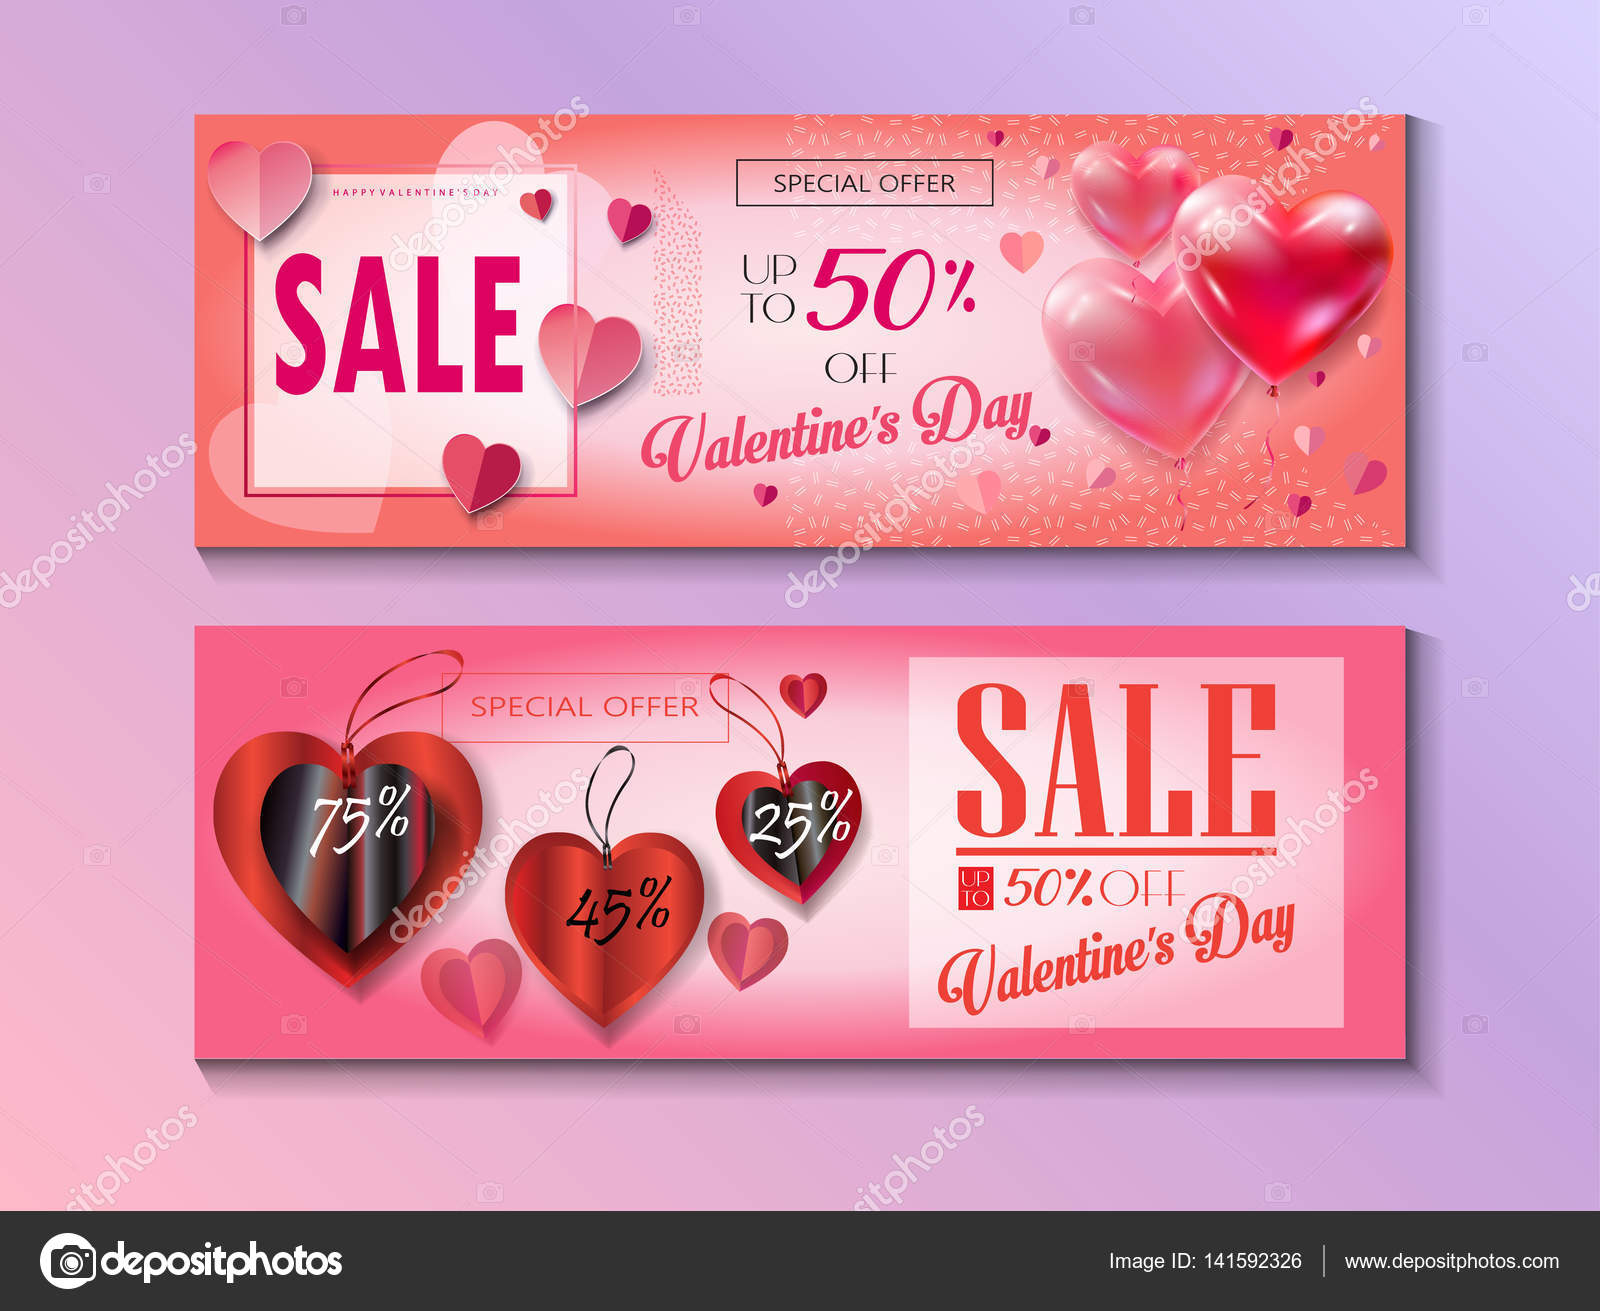 Sale Discount Banner For Valentines Day Weekend Sale Vector